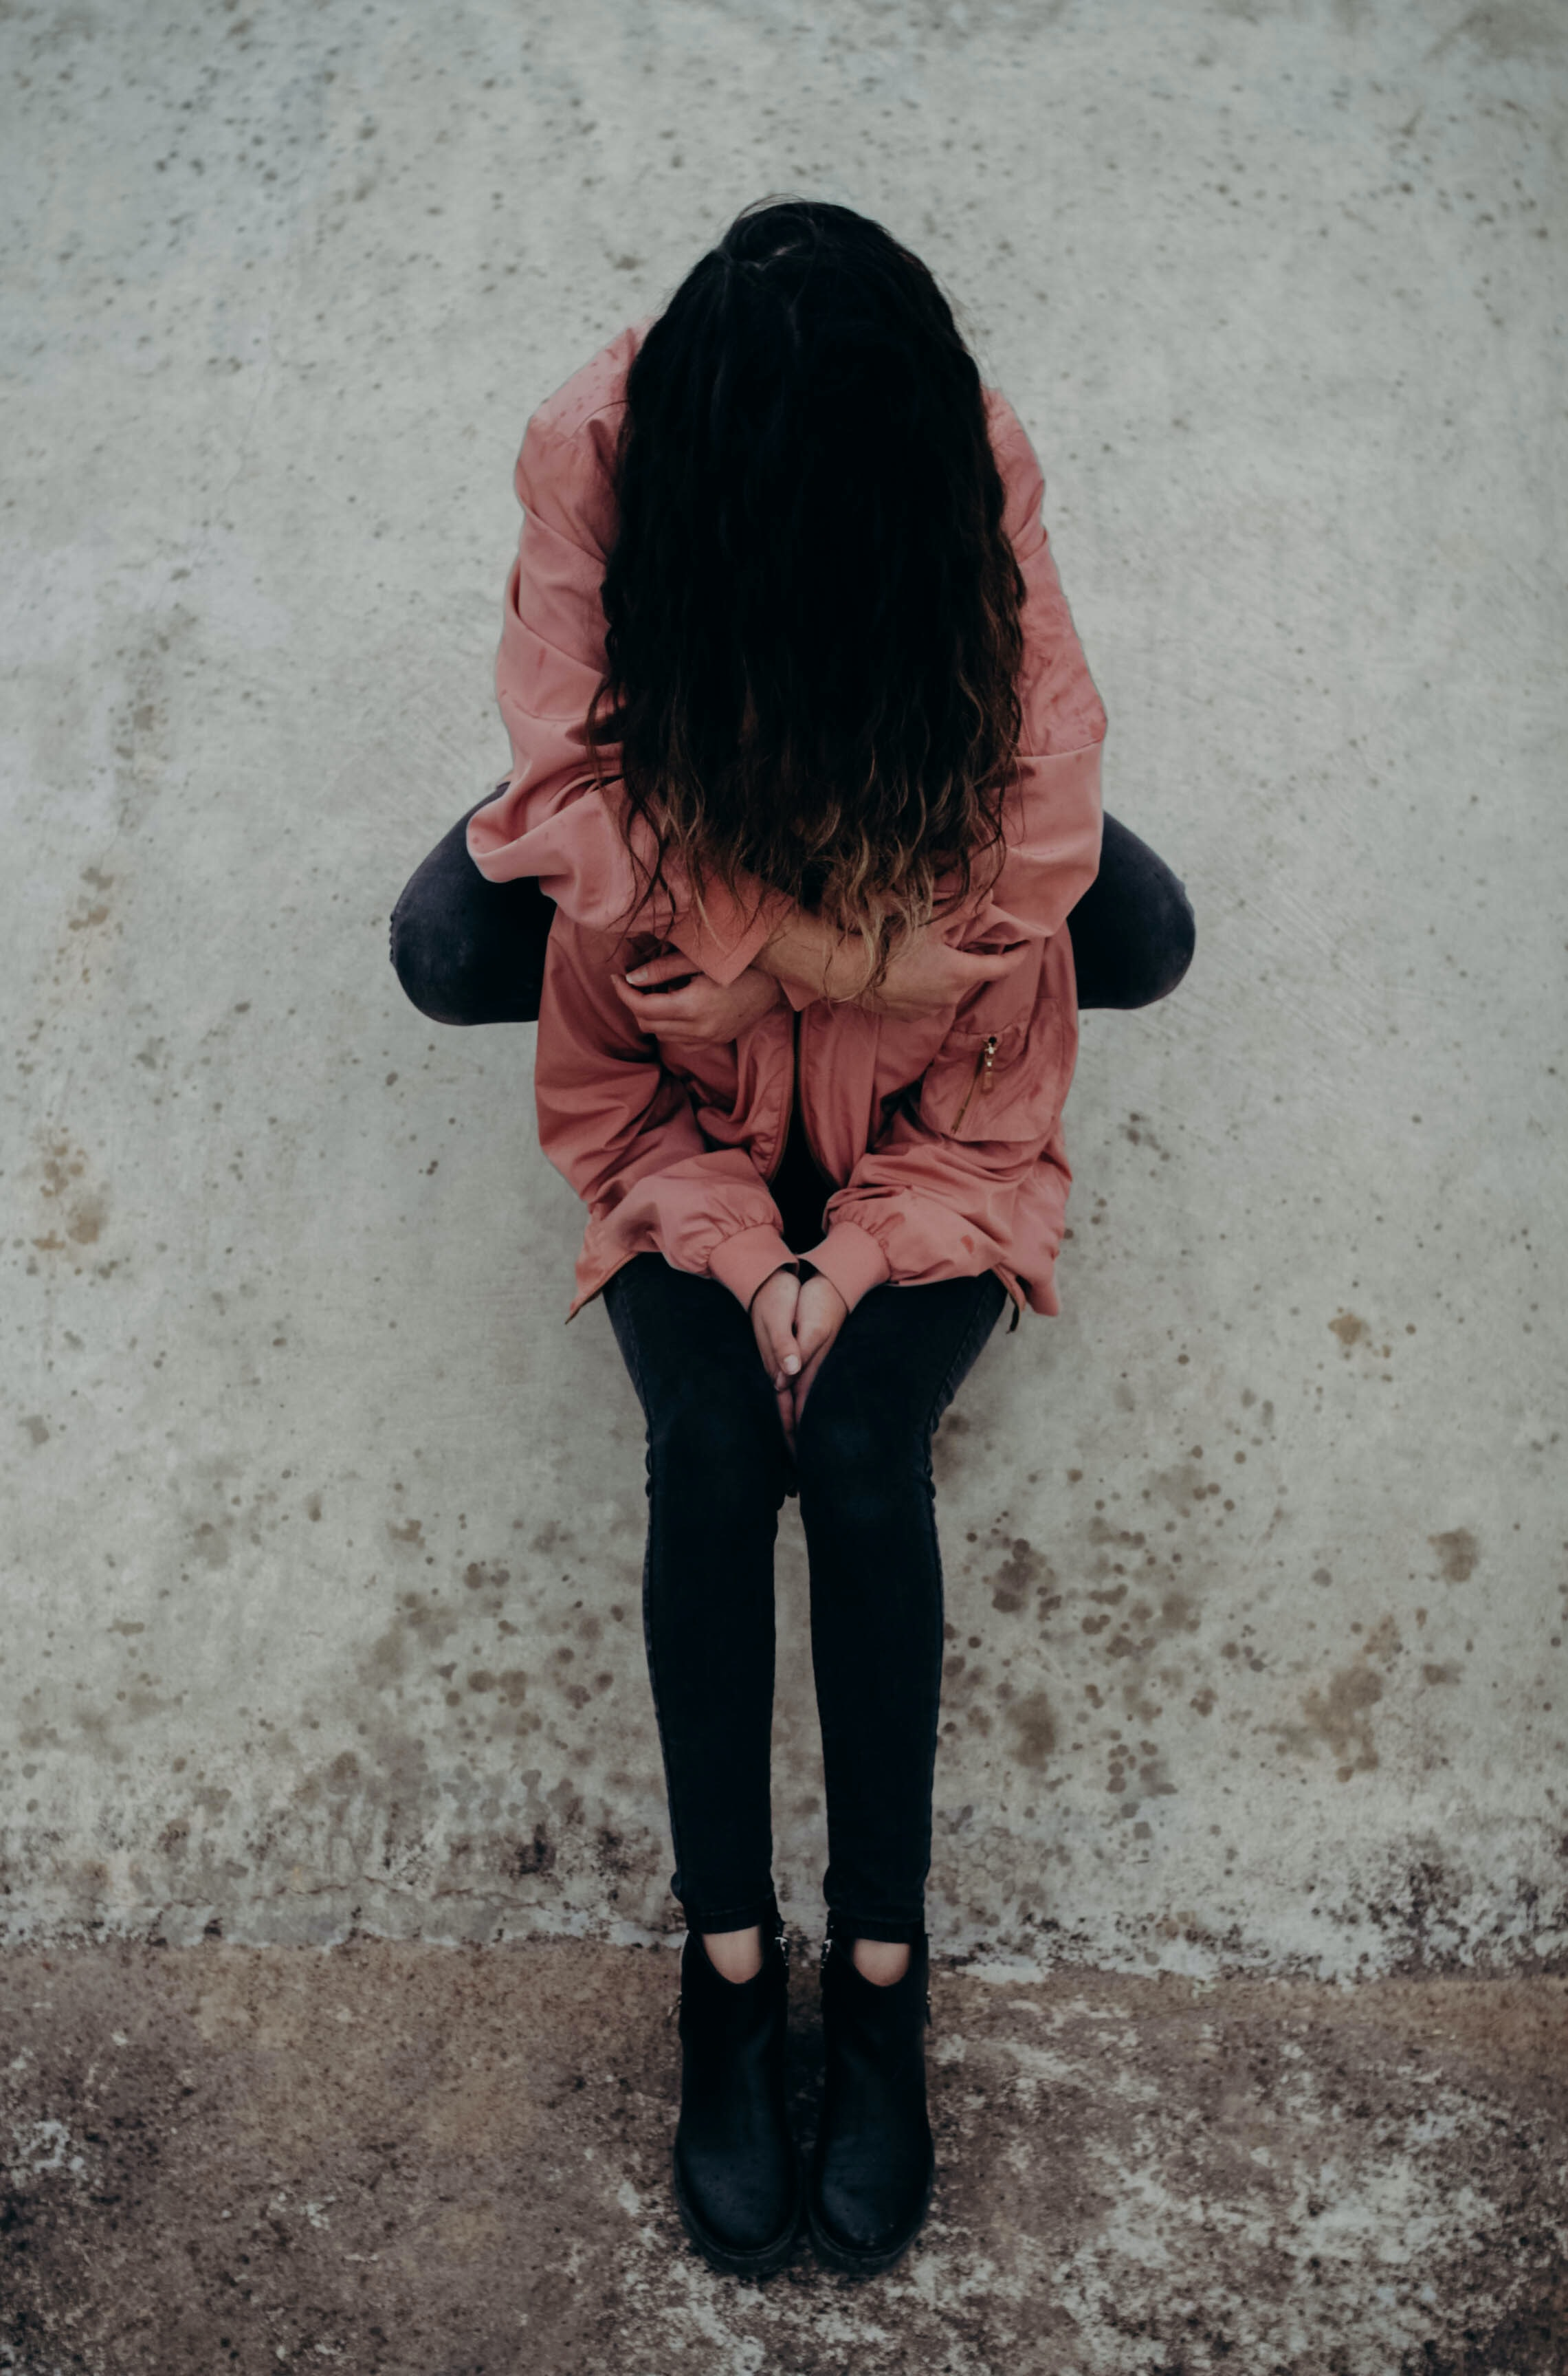 woman hugging person